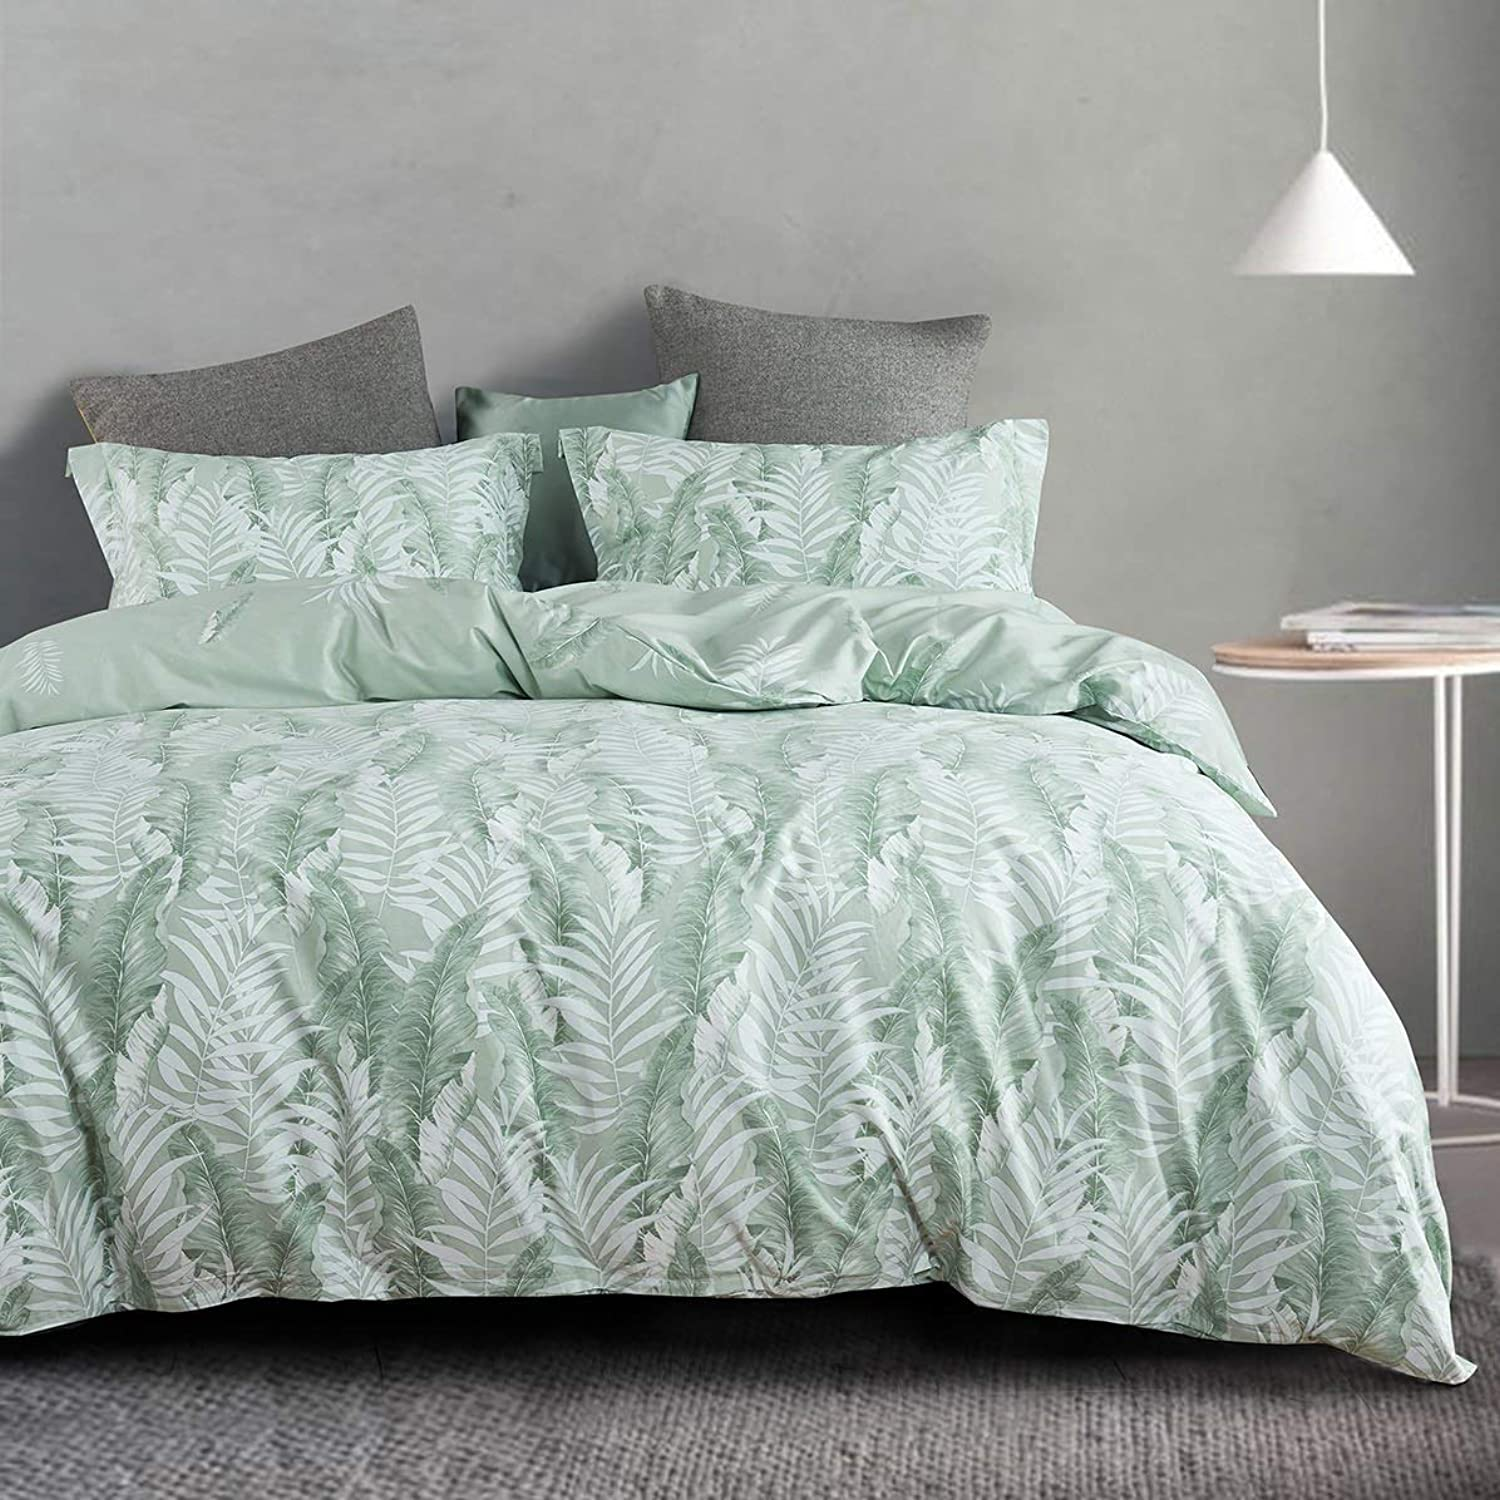 DOLDOA Cotton Tropical Floral Duvet Cover King (90x104inch),3 Pieces (1 Duvet Cover,2 Pillowcases) Green Palm Leaf Printed Bedding Cover Set,Soft and Breathable Duvet Cover Set for Kids,Boys and Girls